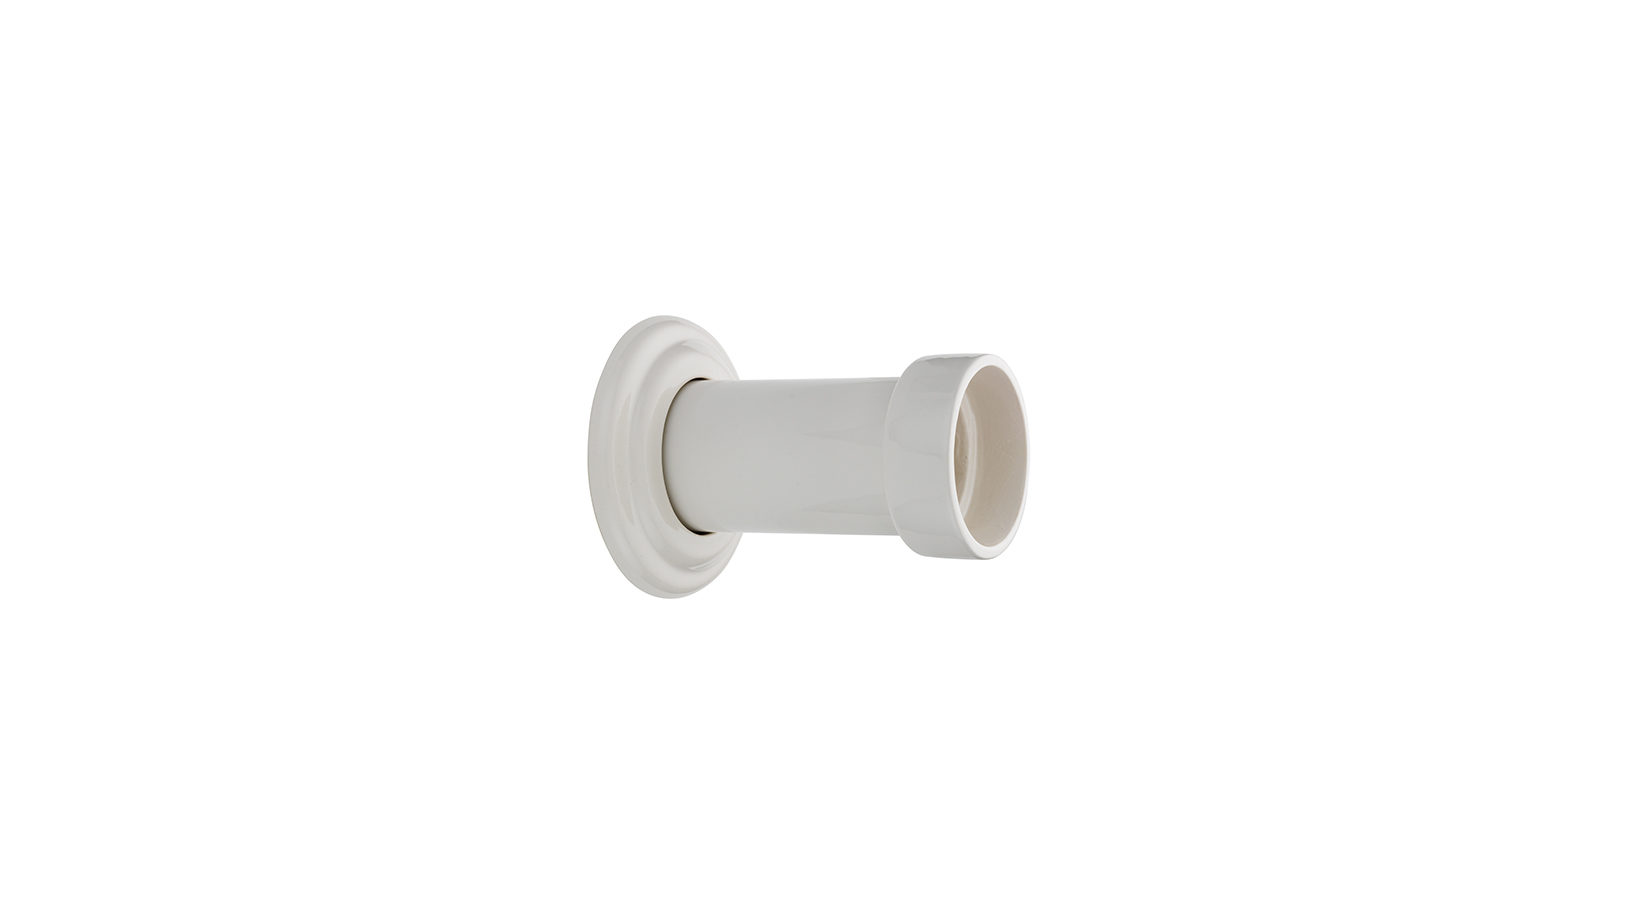 Ceramic Soil Pipe Connector Into Wall